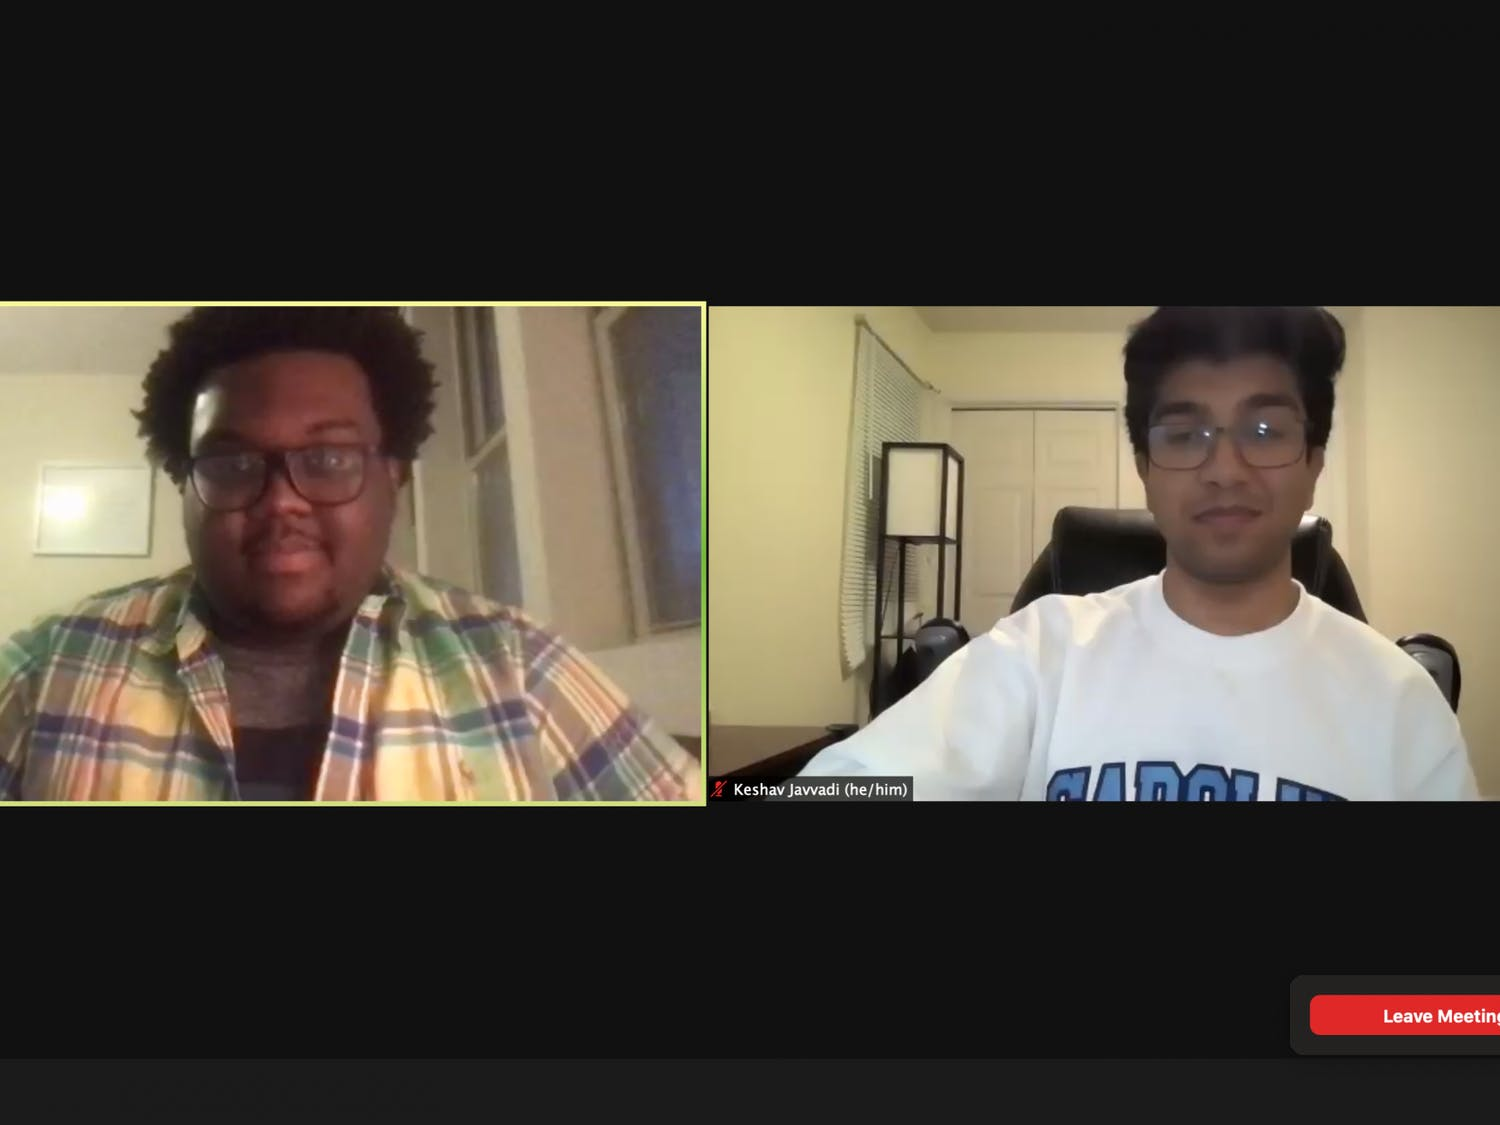 Screenshot from the final Student Body President candidate debate held over Zoom on Monday, Feb. 22, 2021.